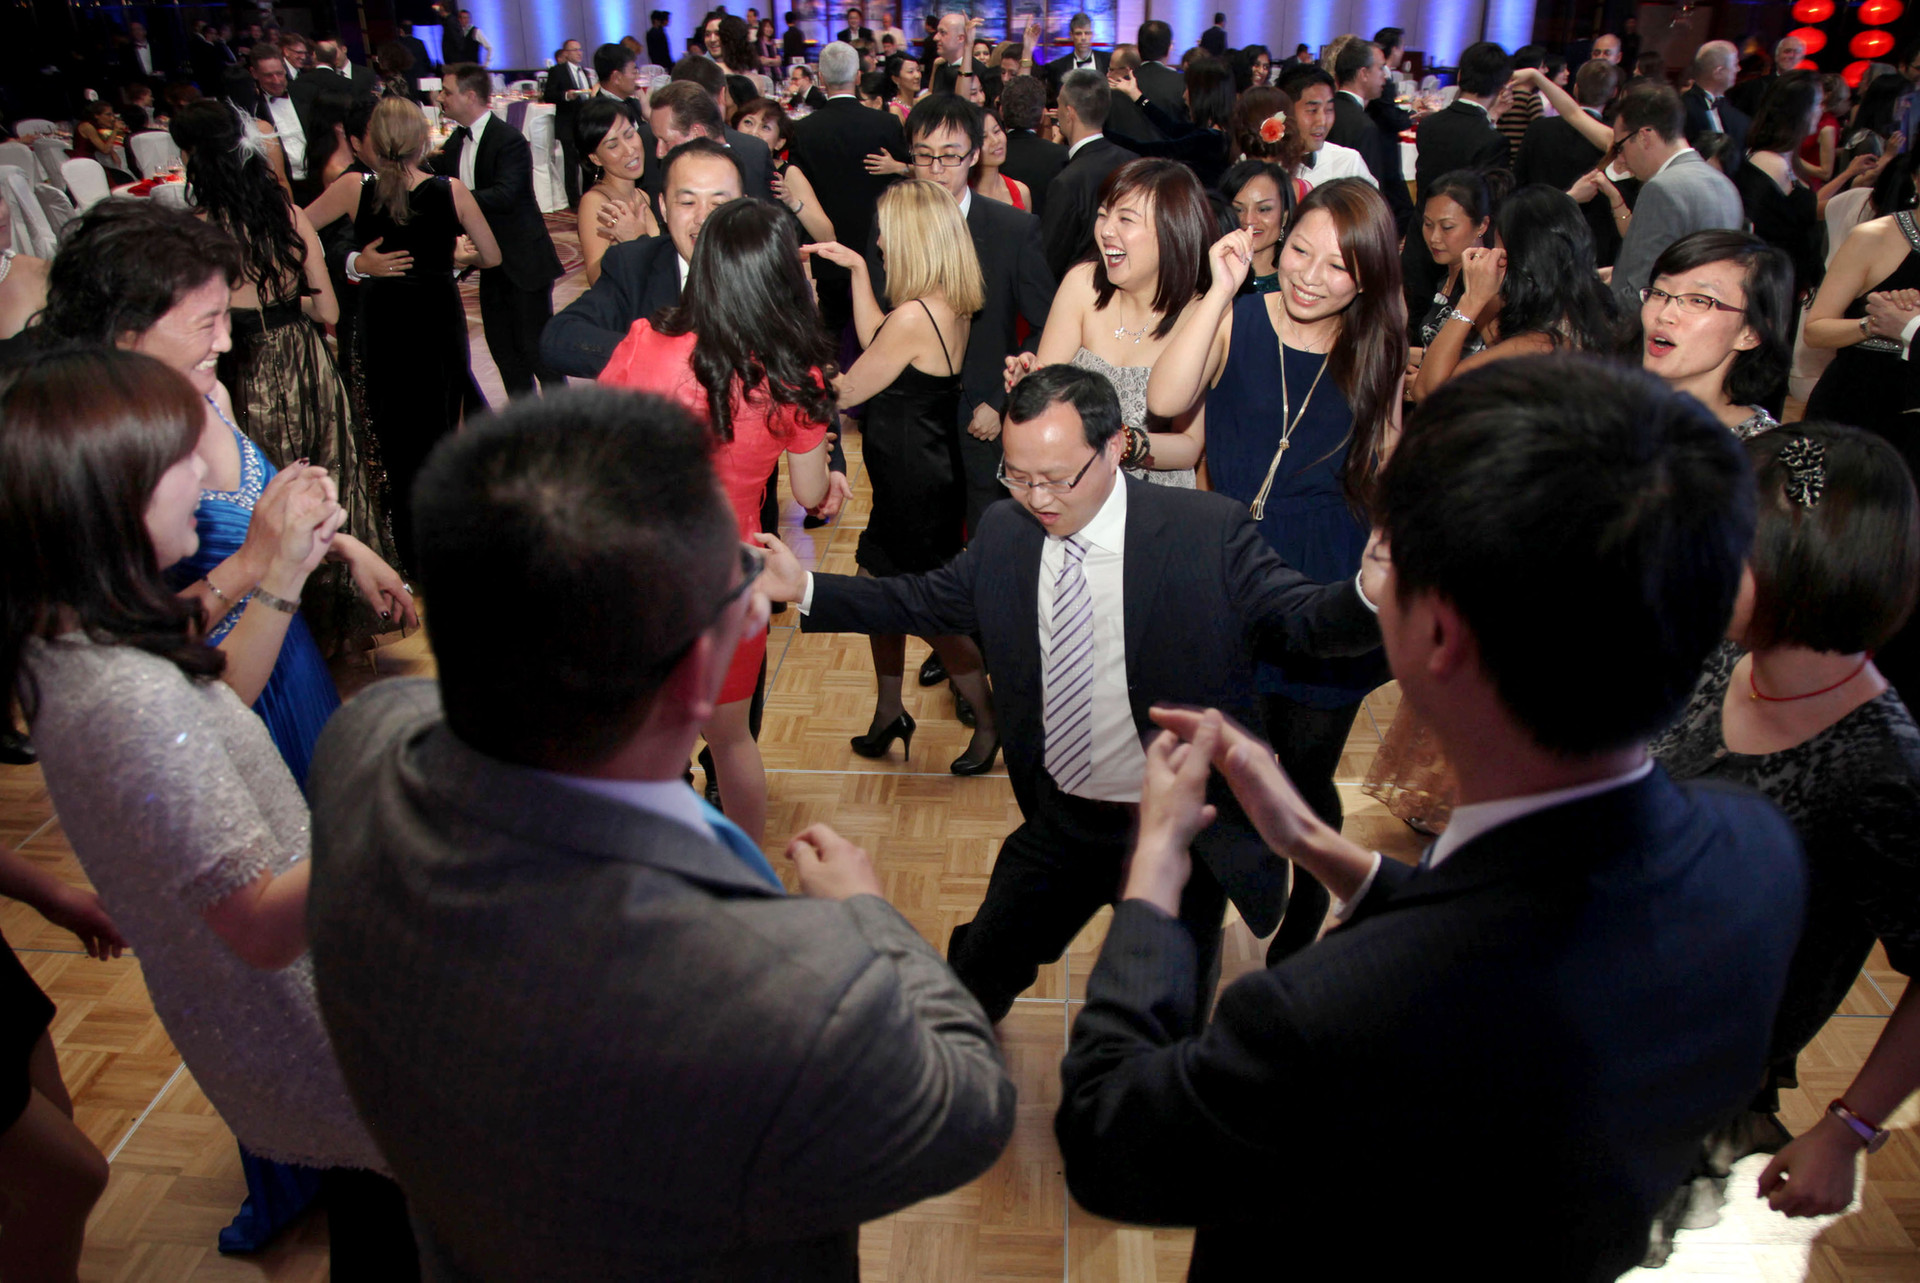 120331 Swiss Ball 2012 YVH 601.jpg